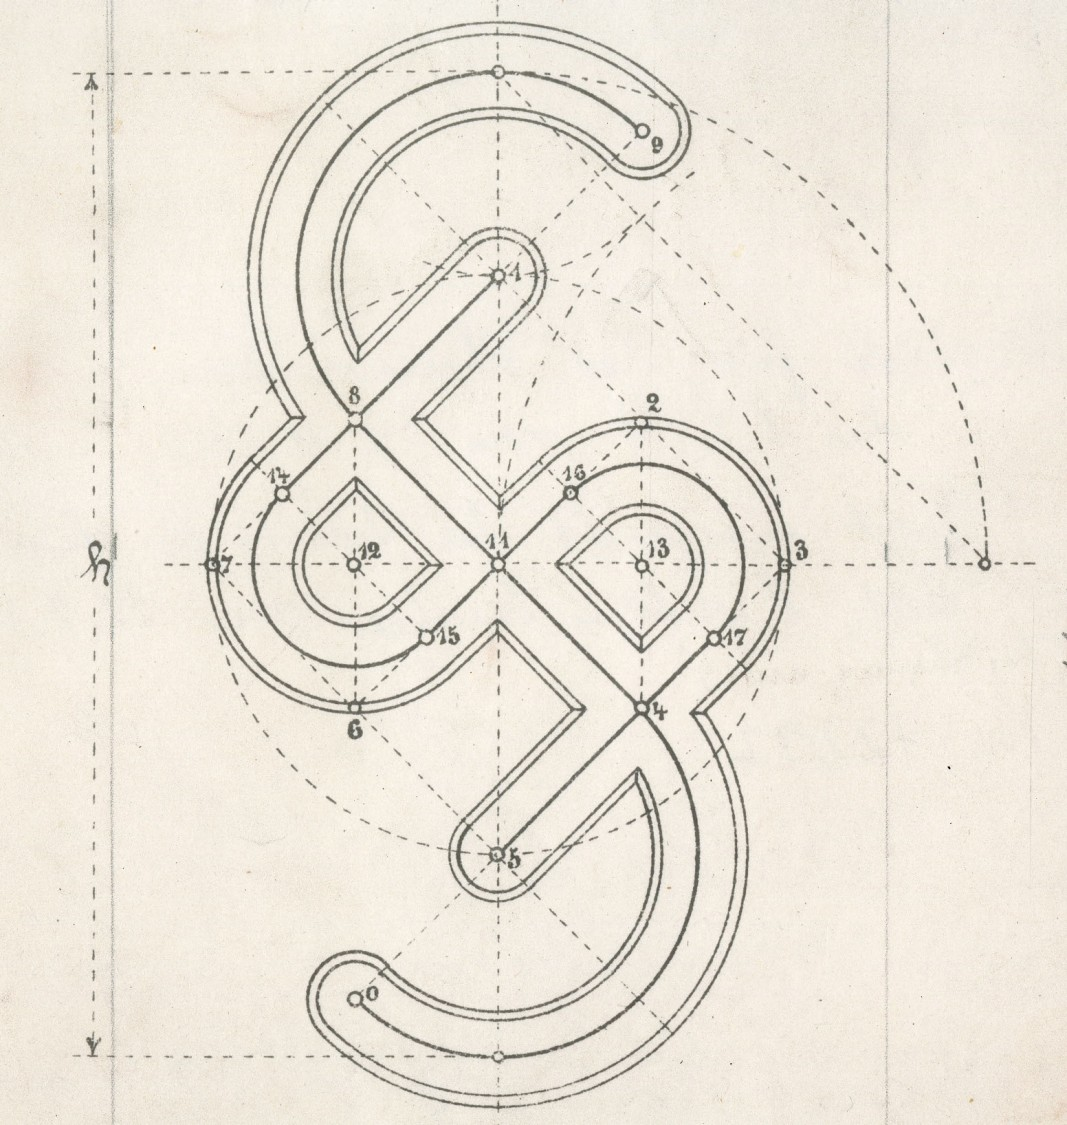 A drawing of the house mark for Siemens-Schuckertwerke